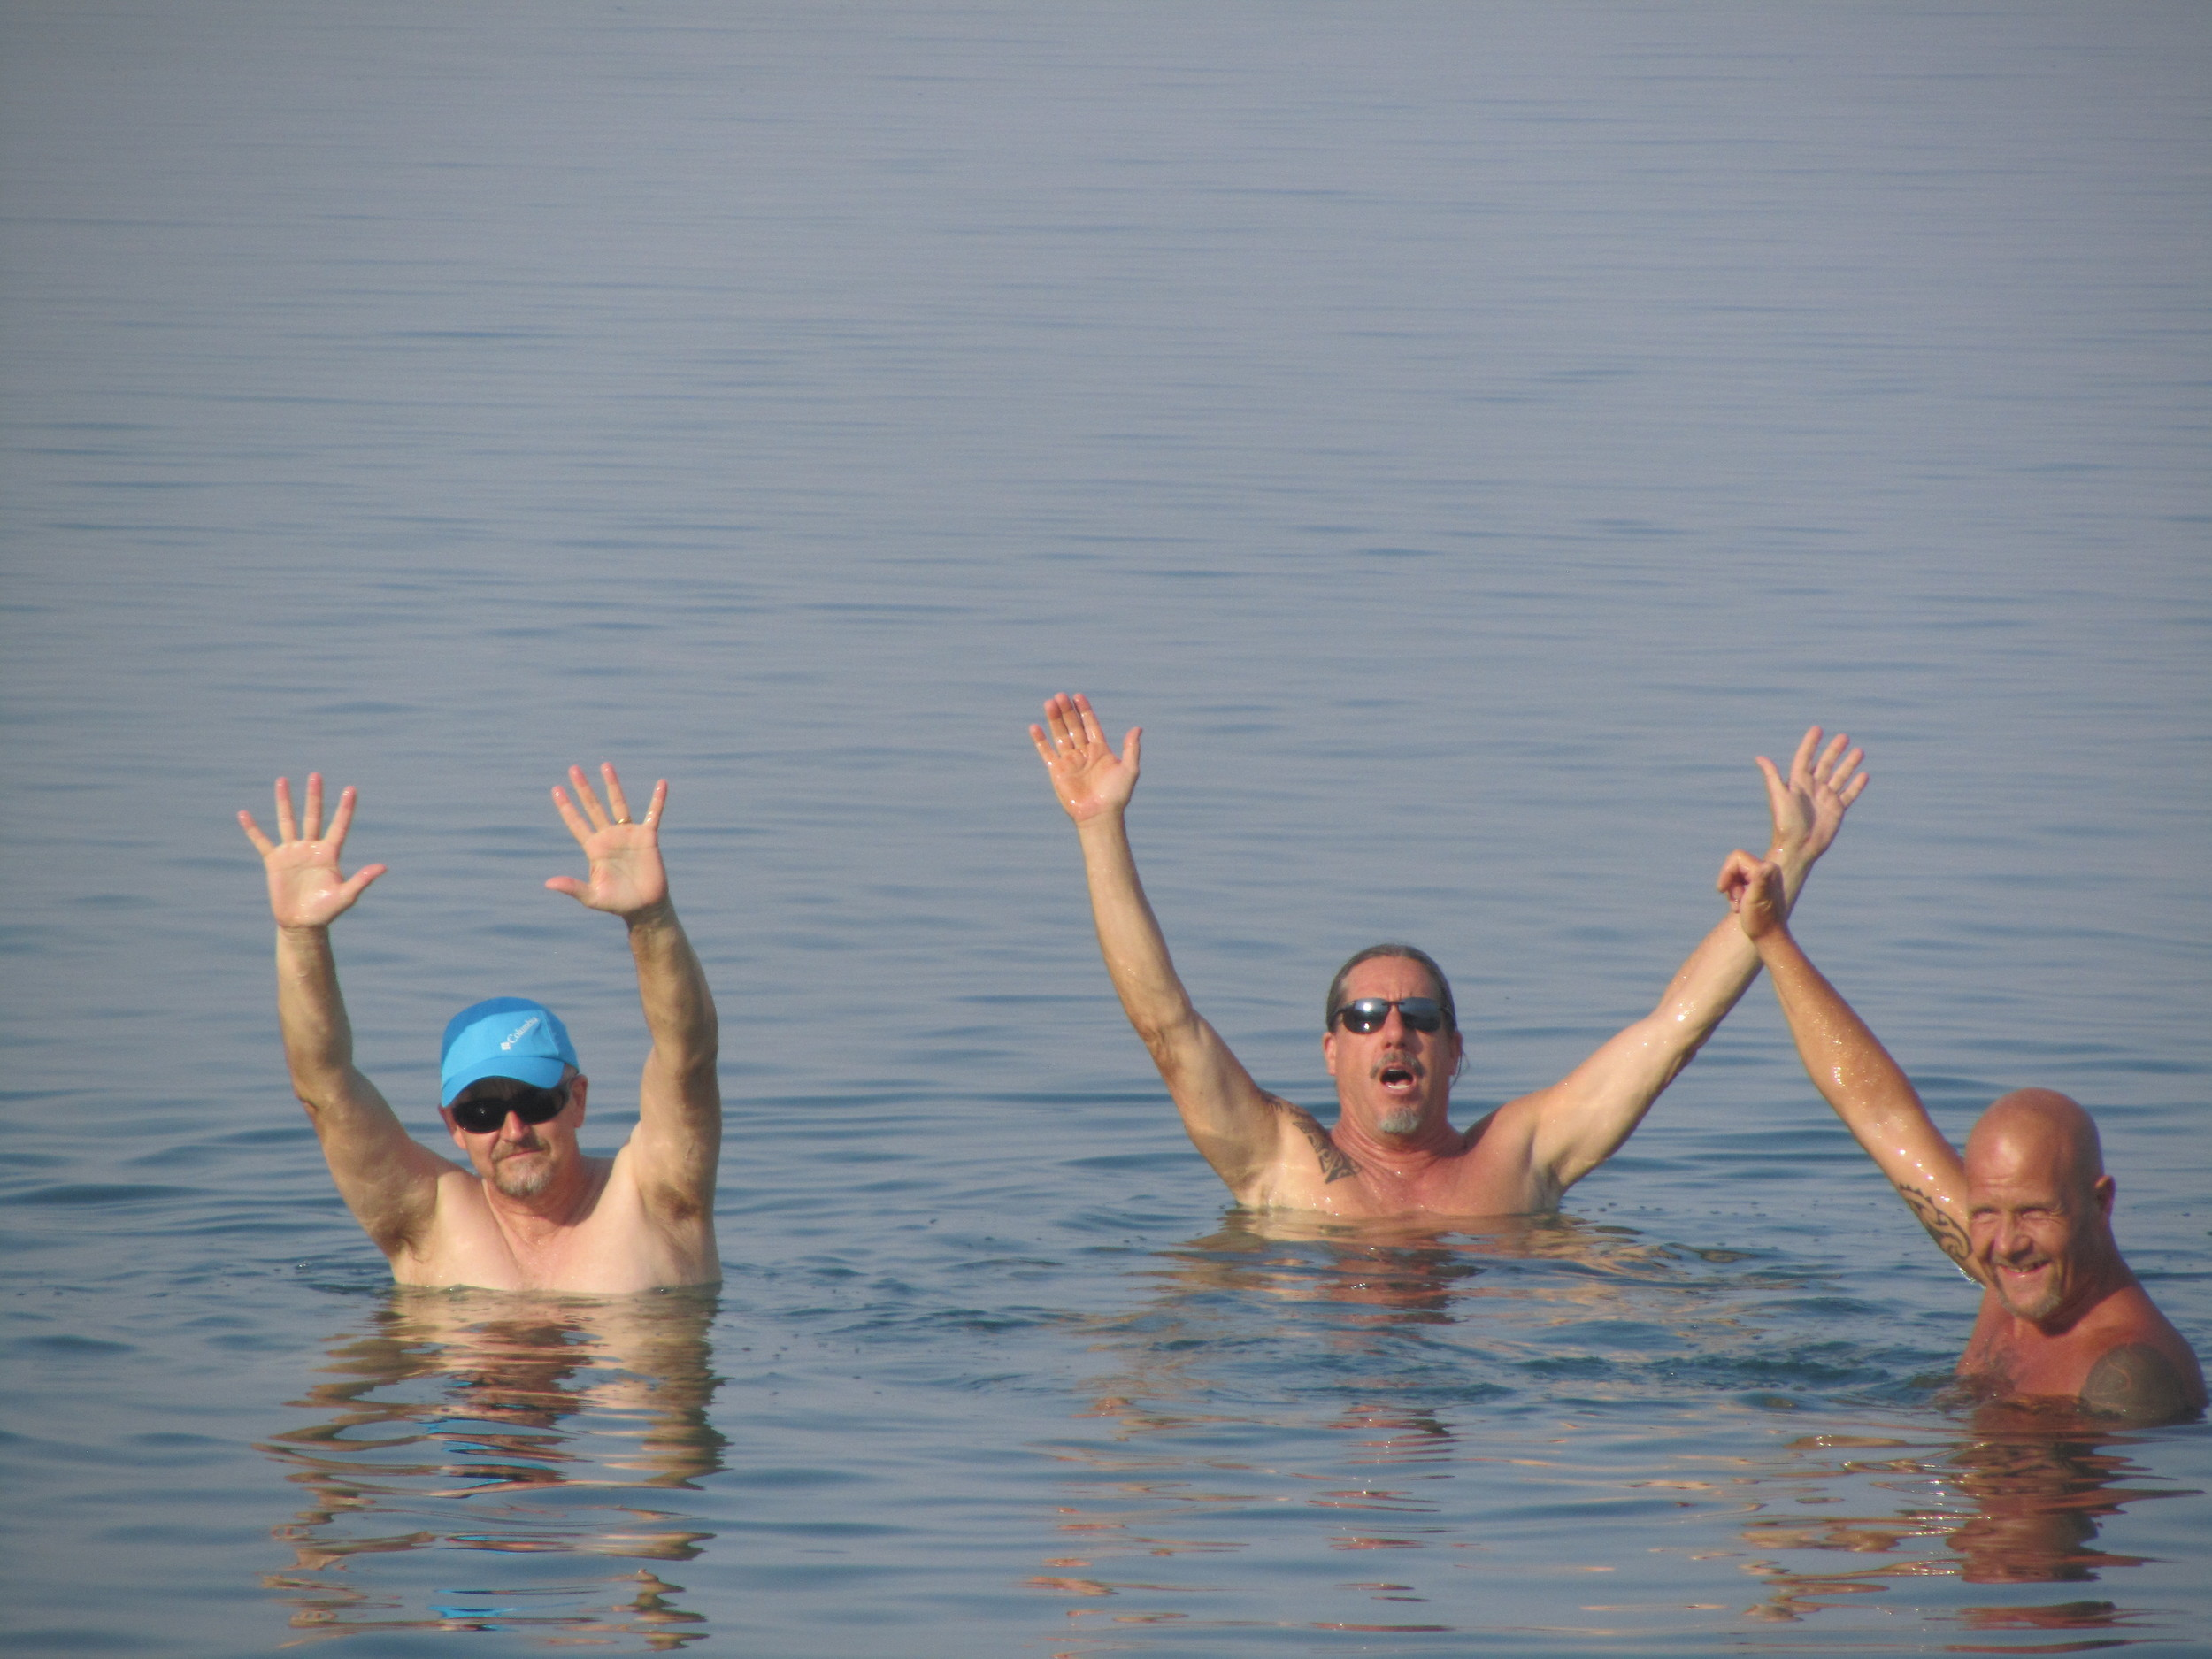 Art and Malcolm floating in thebuoyantwaters of the Dead Sea